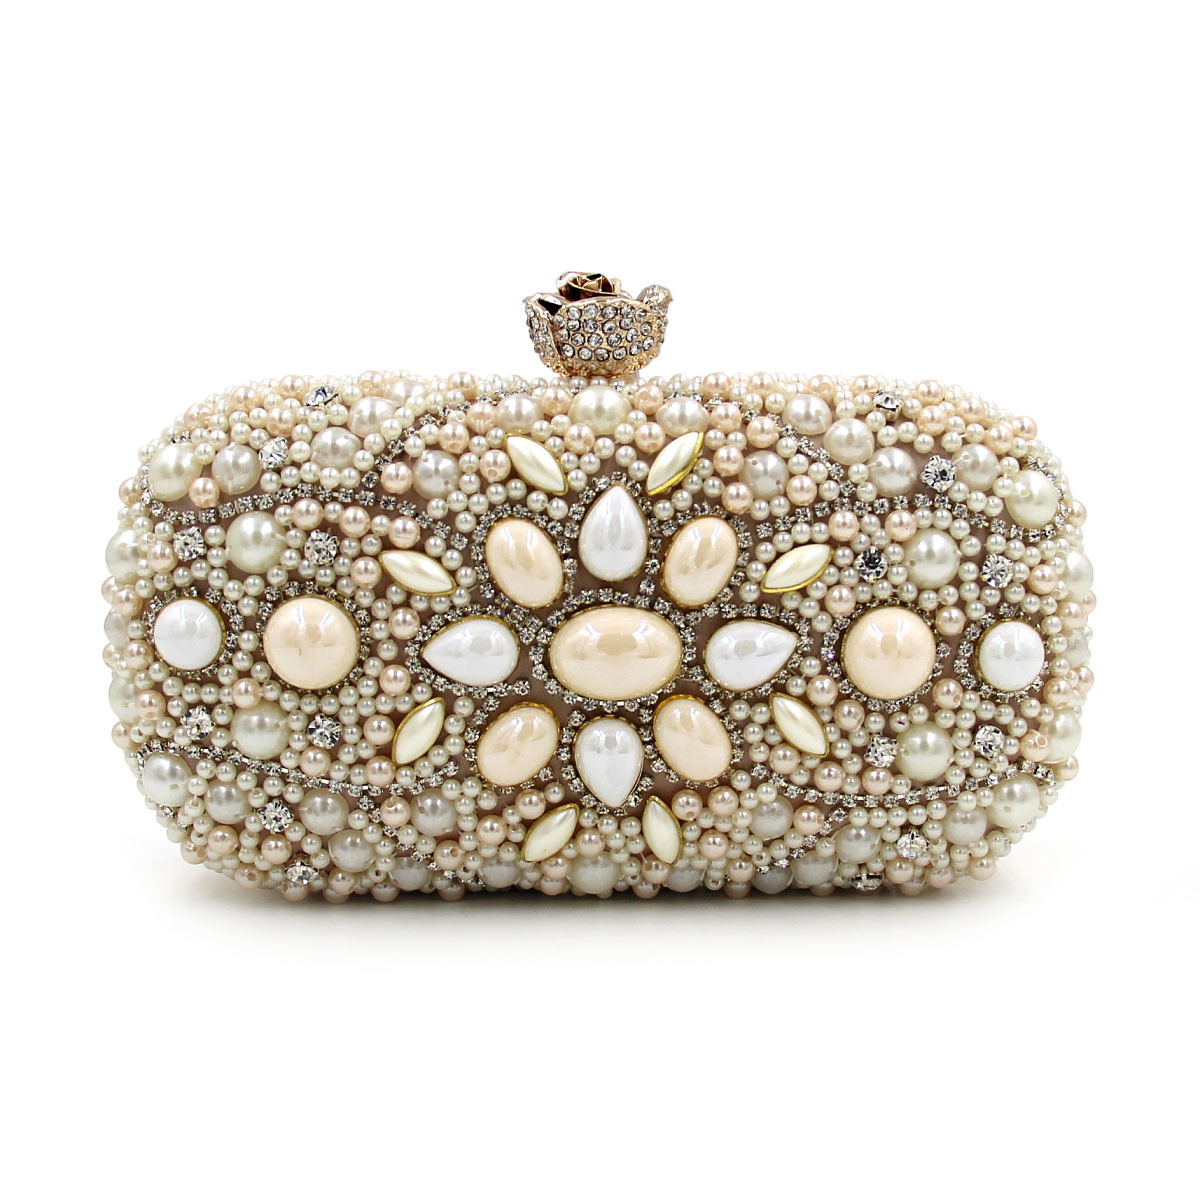 Women Clutch Evening Bags New Multi-color Diamond-studded Beaded Ladies Evening Bags Clutch Industry Pearl Bridal Party Purse<br>